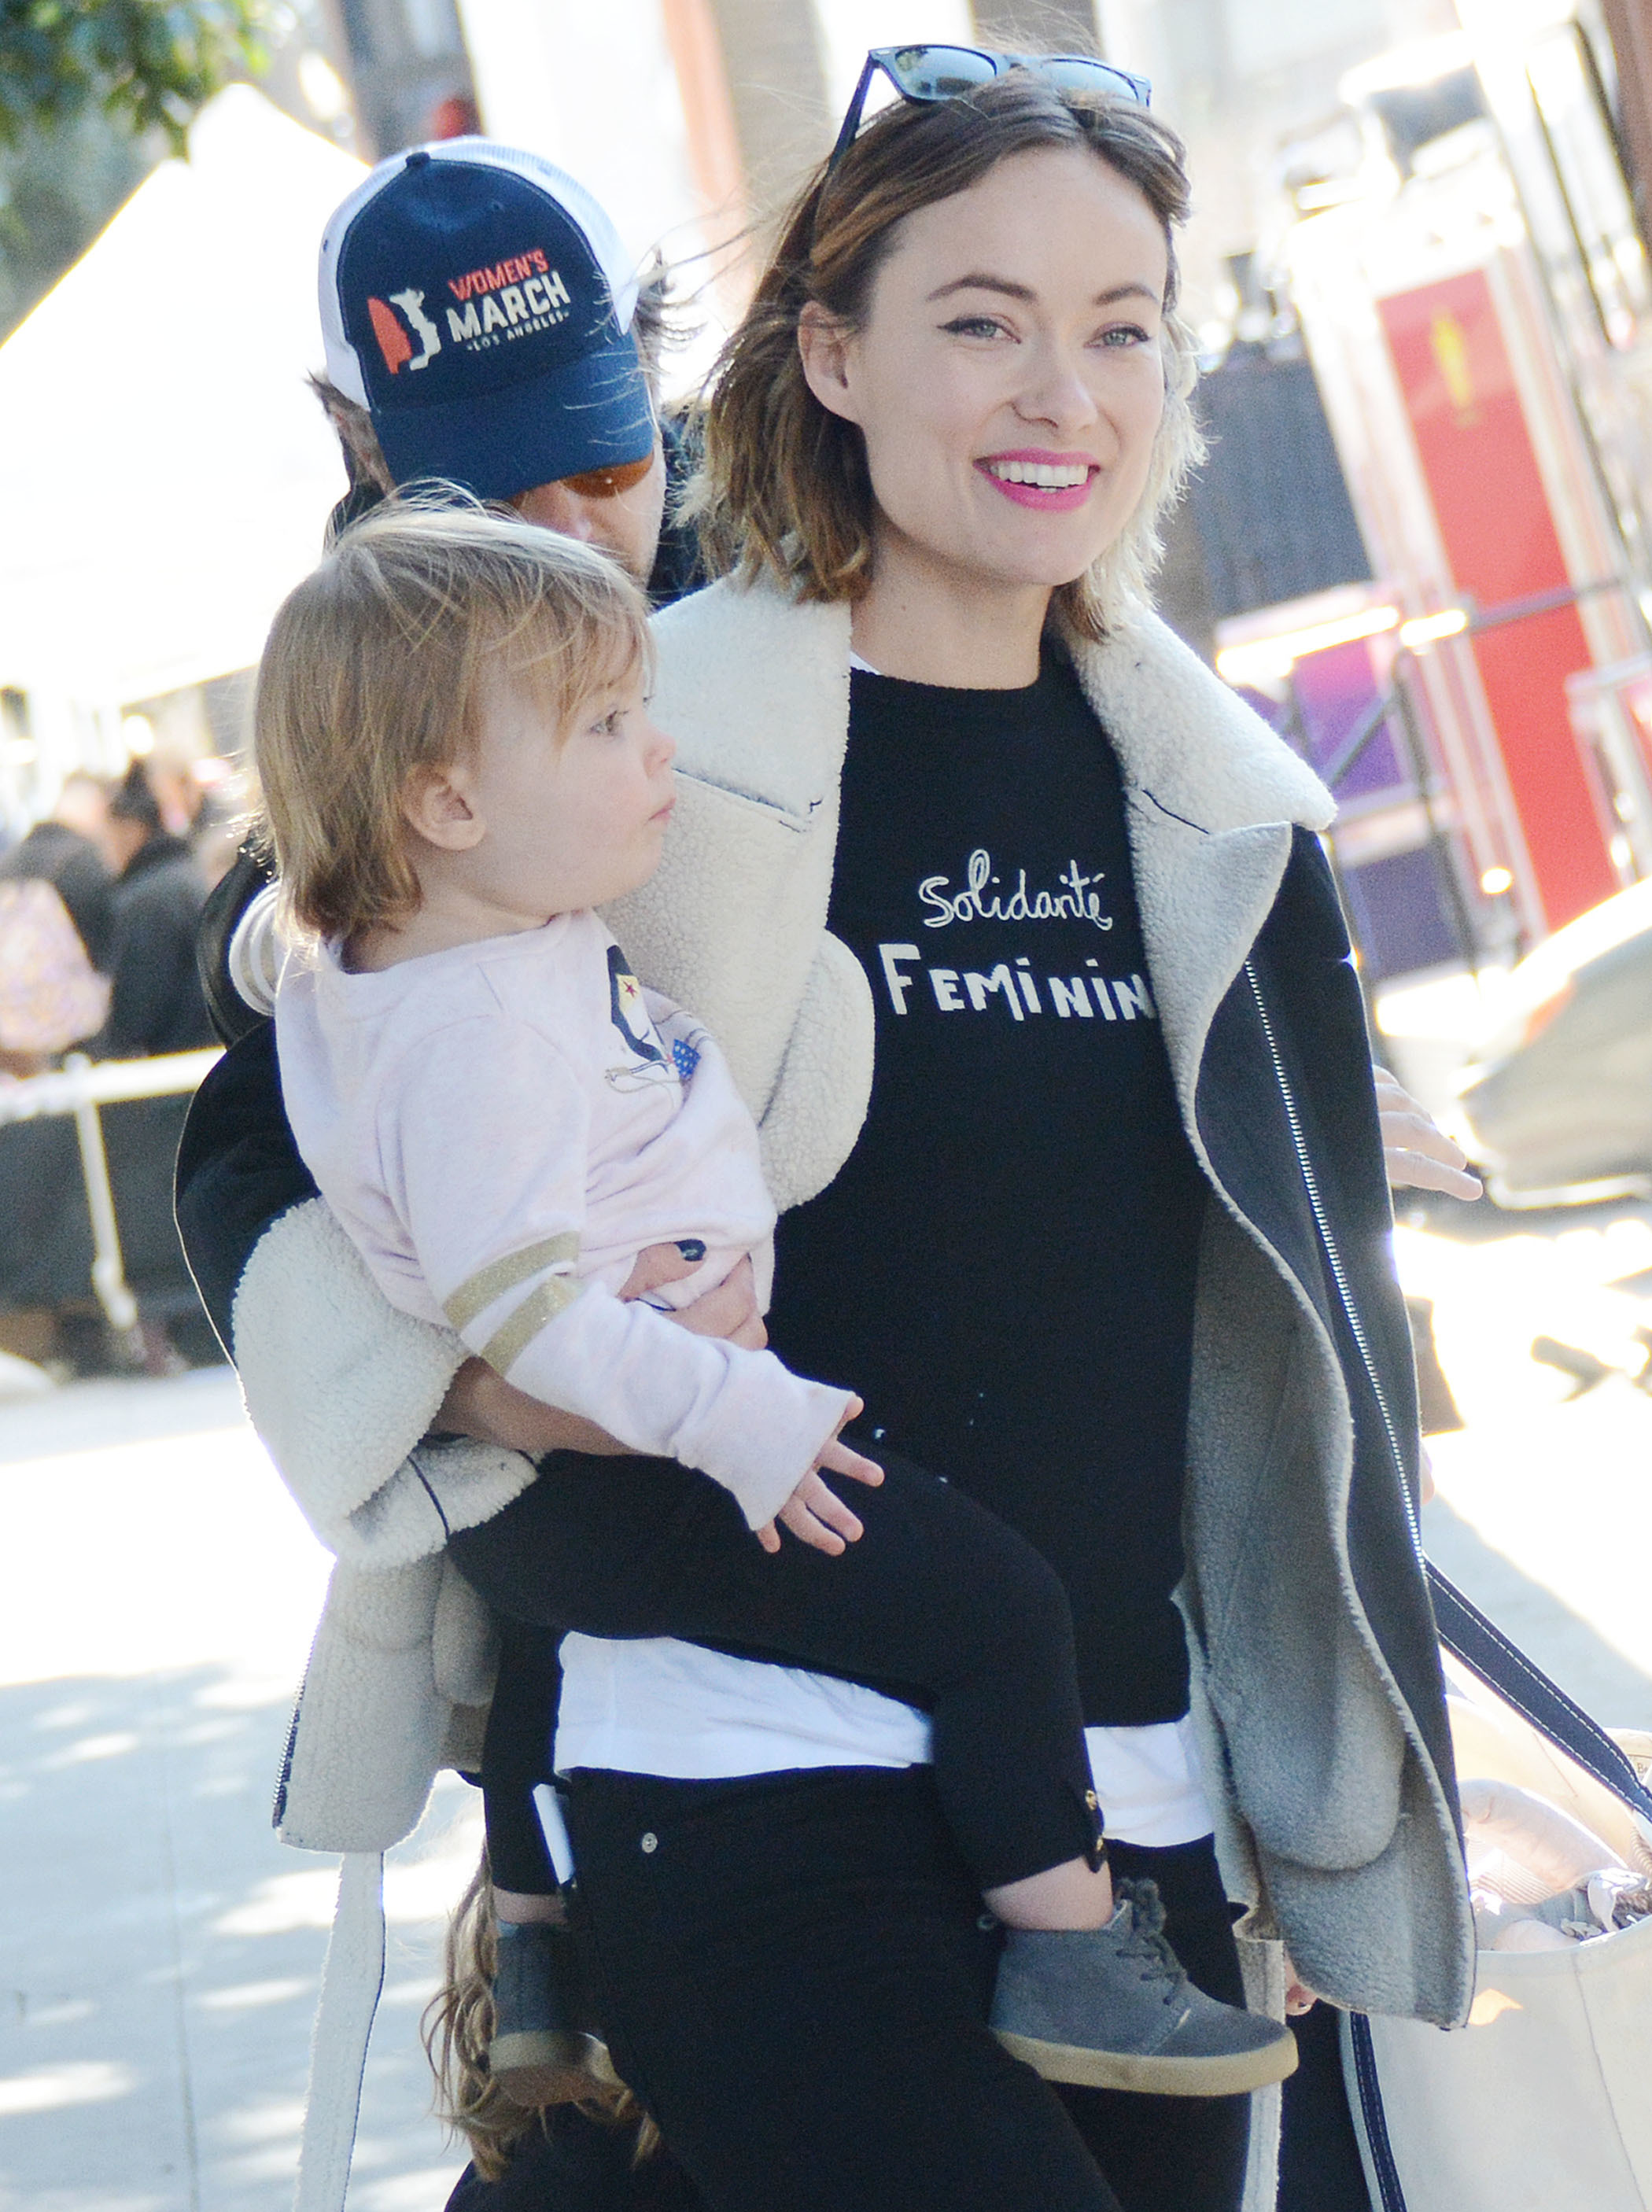 Olivia Wilde and her family attend the Women's March rally in Los Angeles on Jan. 20, 2018.